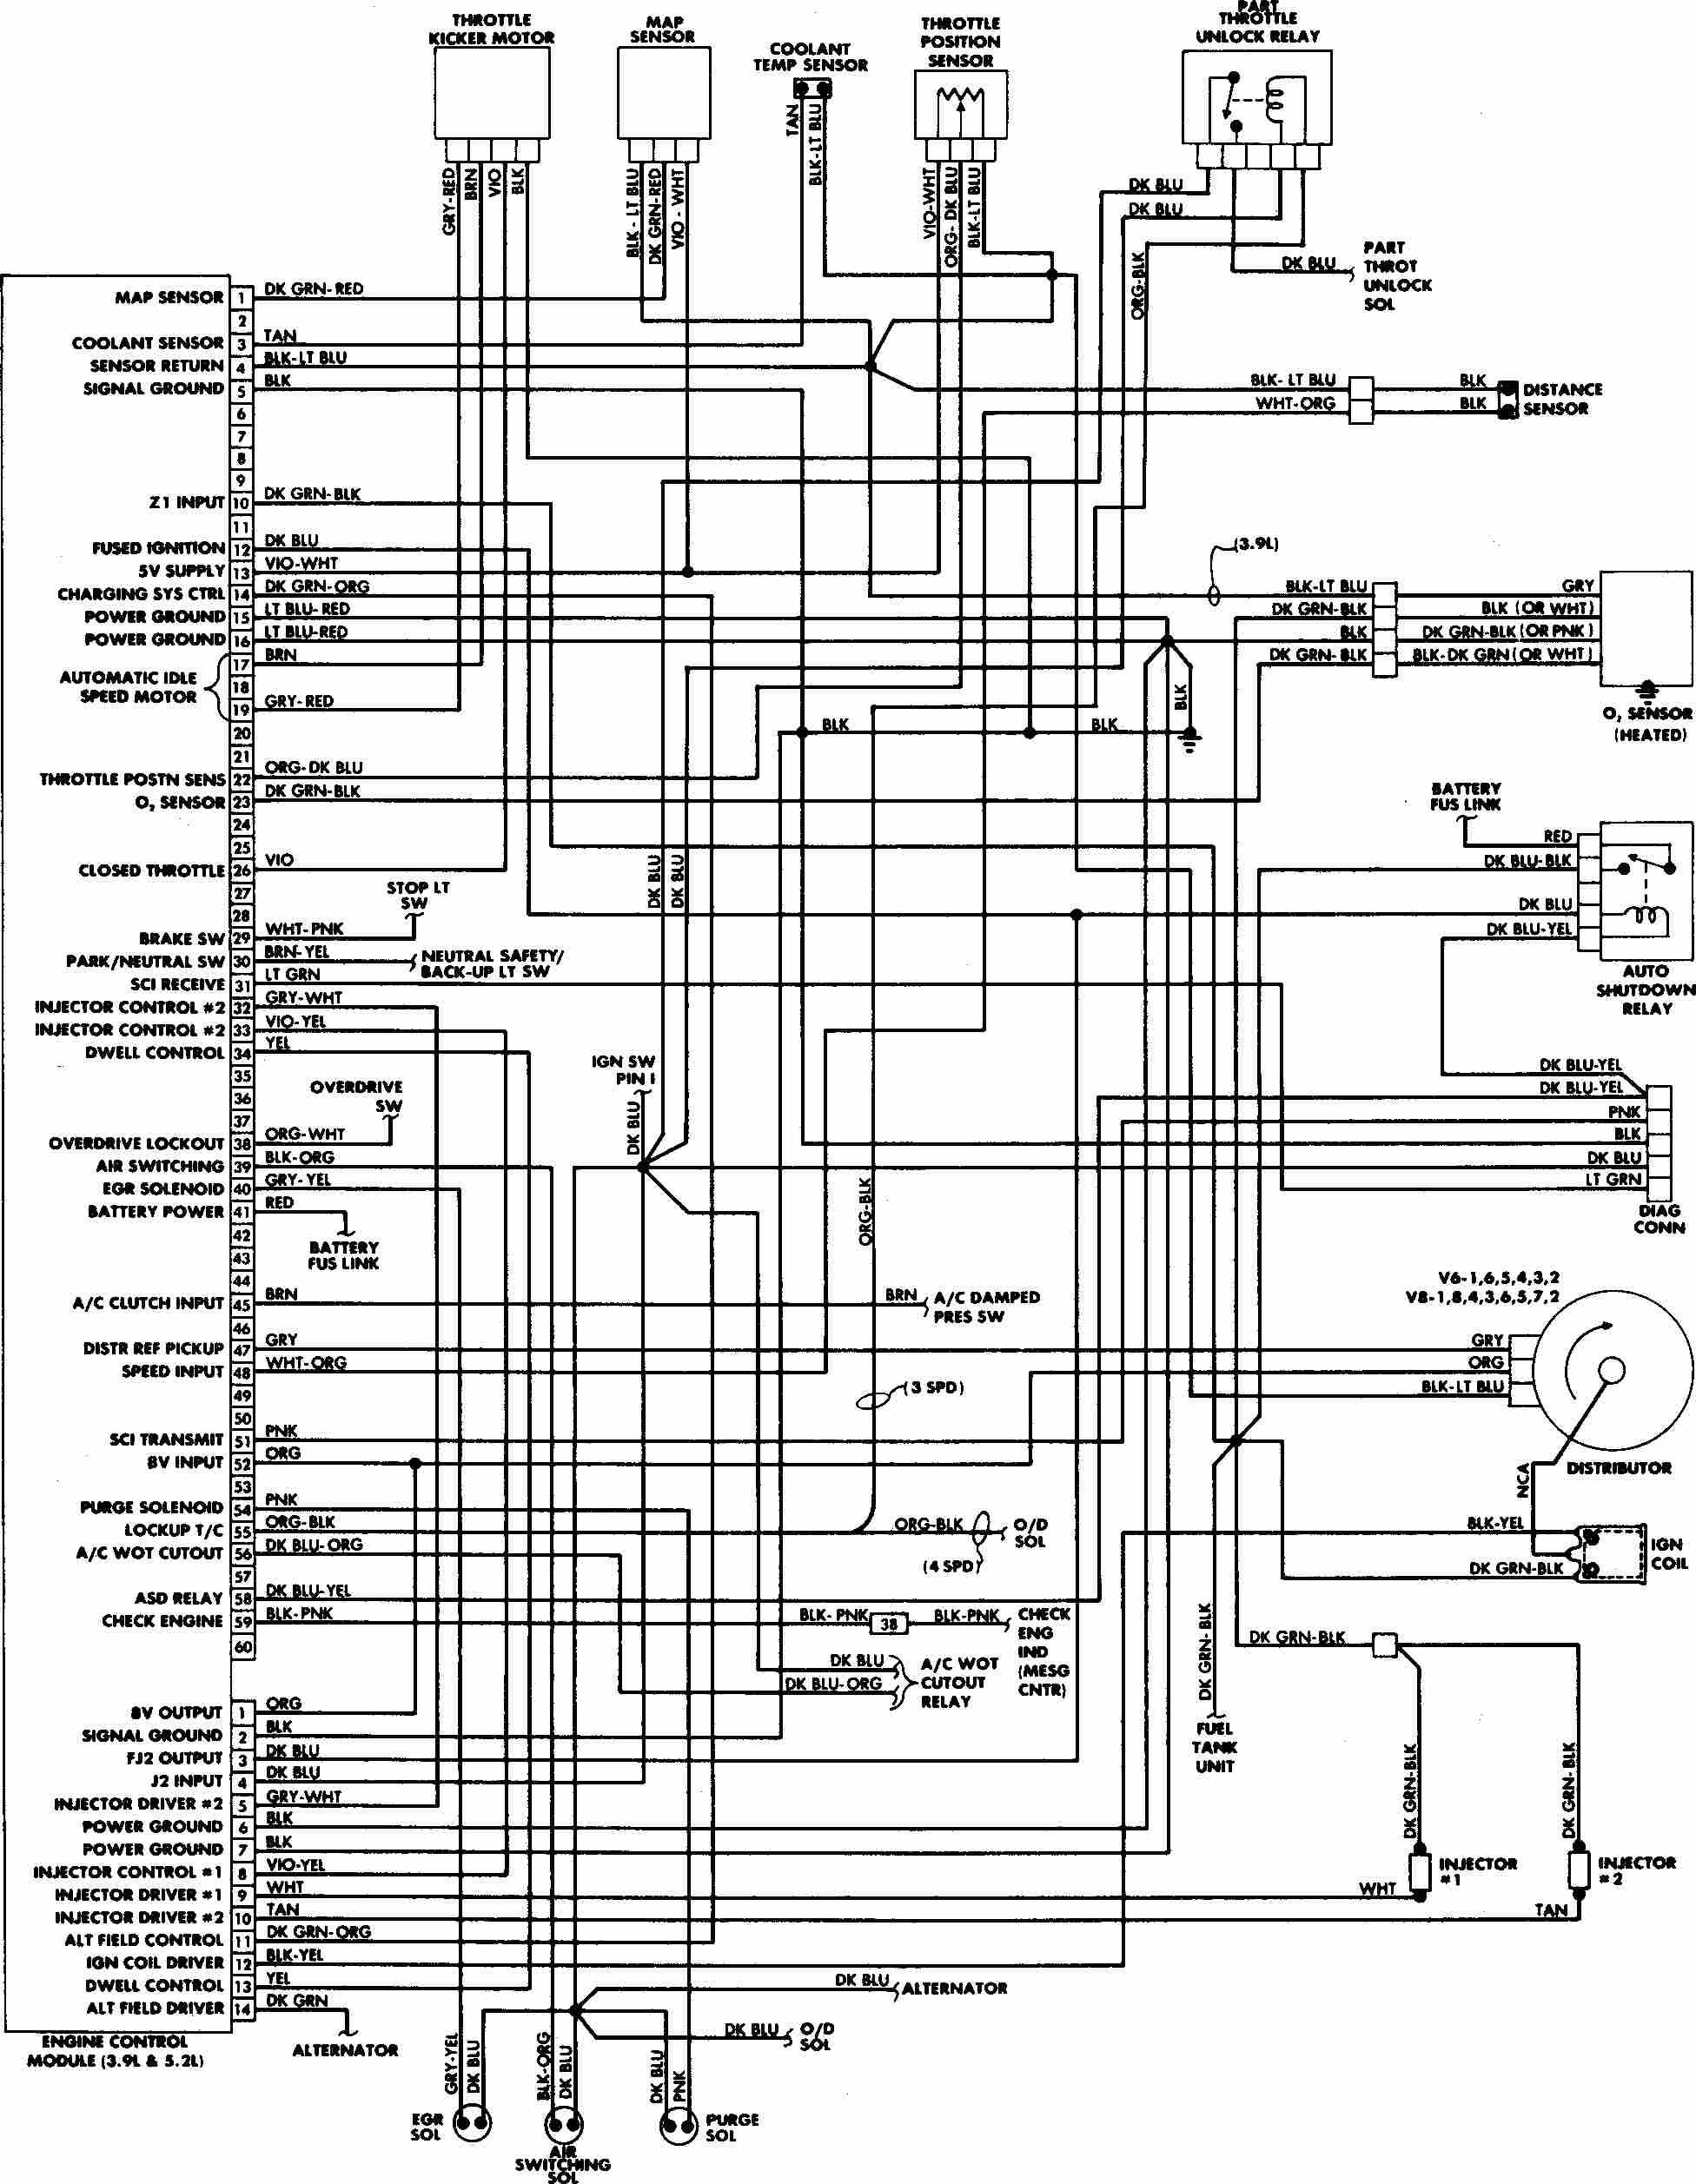 hight resolution of 2003 dodge neon parts diagram wiring schematic wiring diagram sequence2003 dodge neon parts diagram wiring schematic